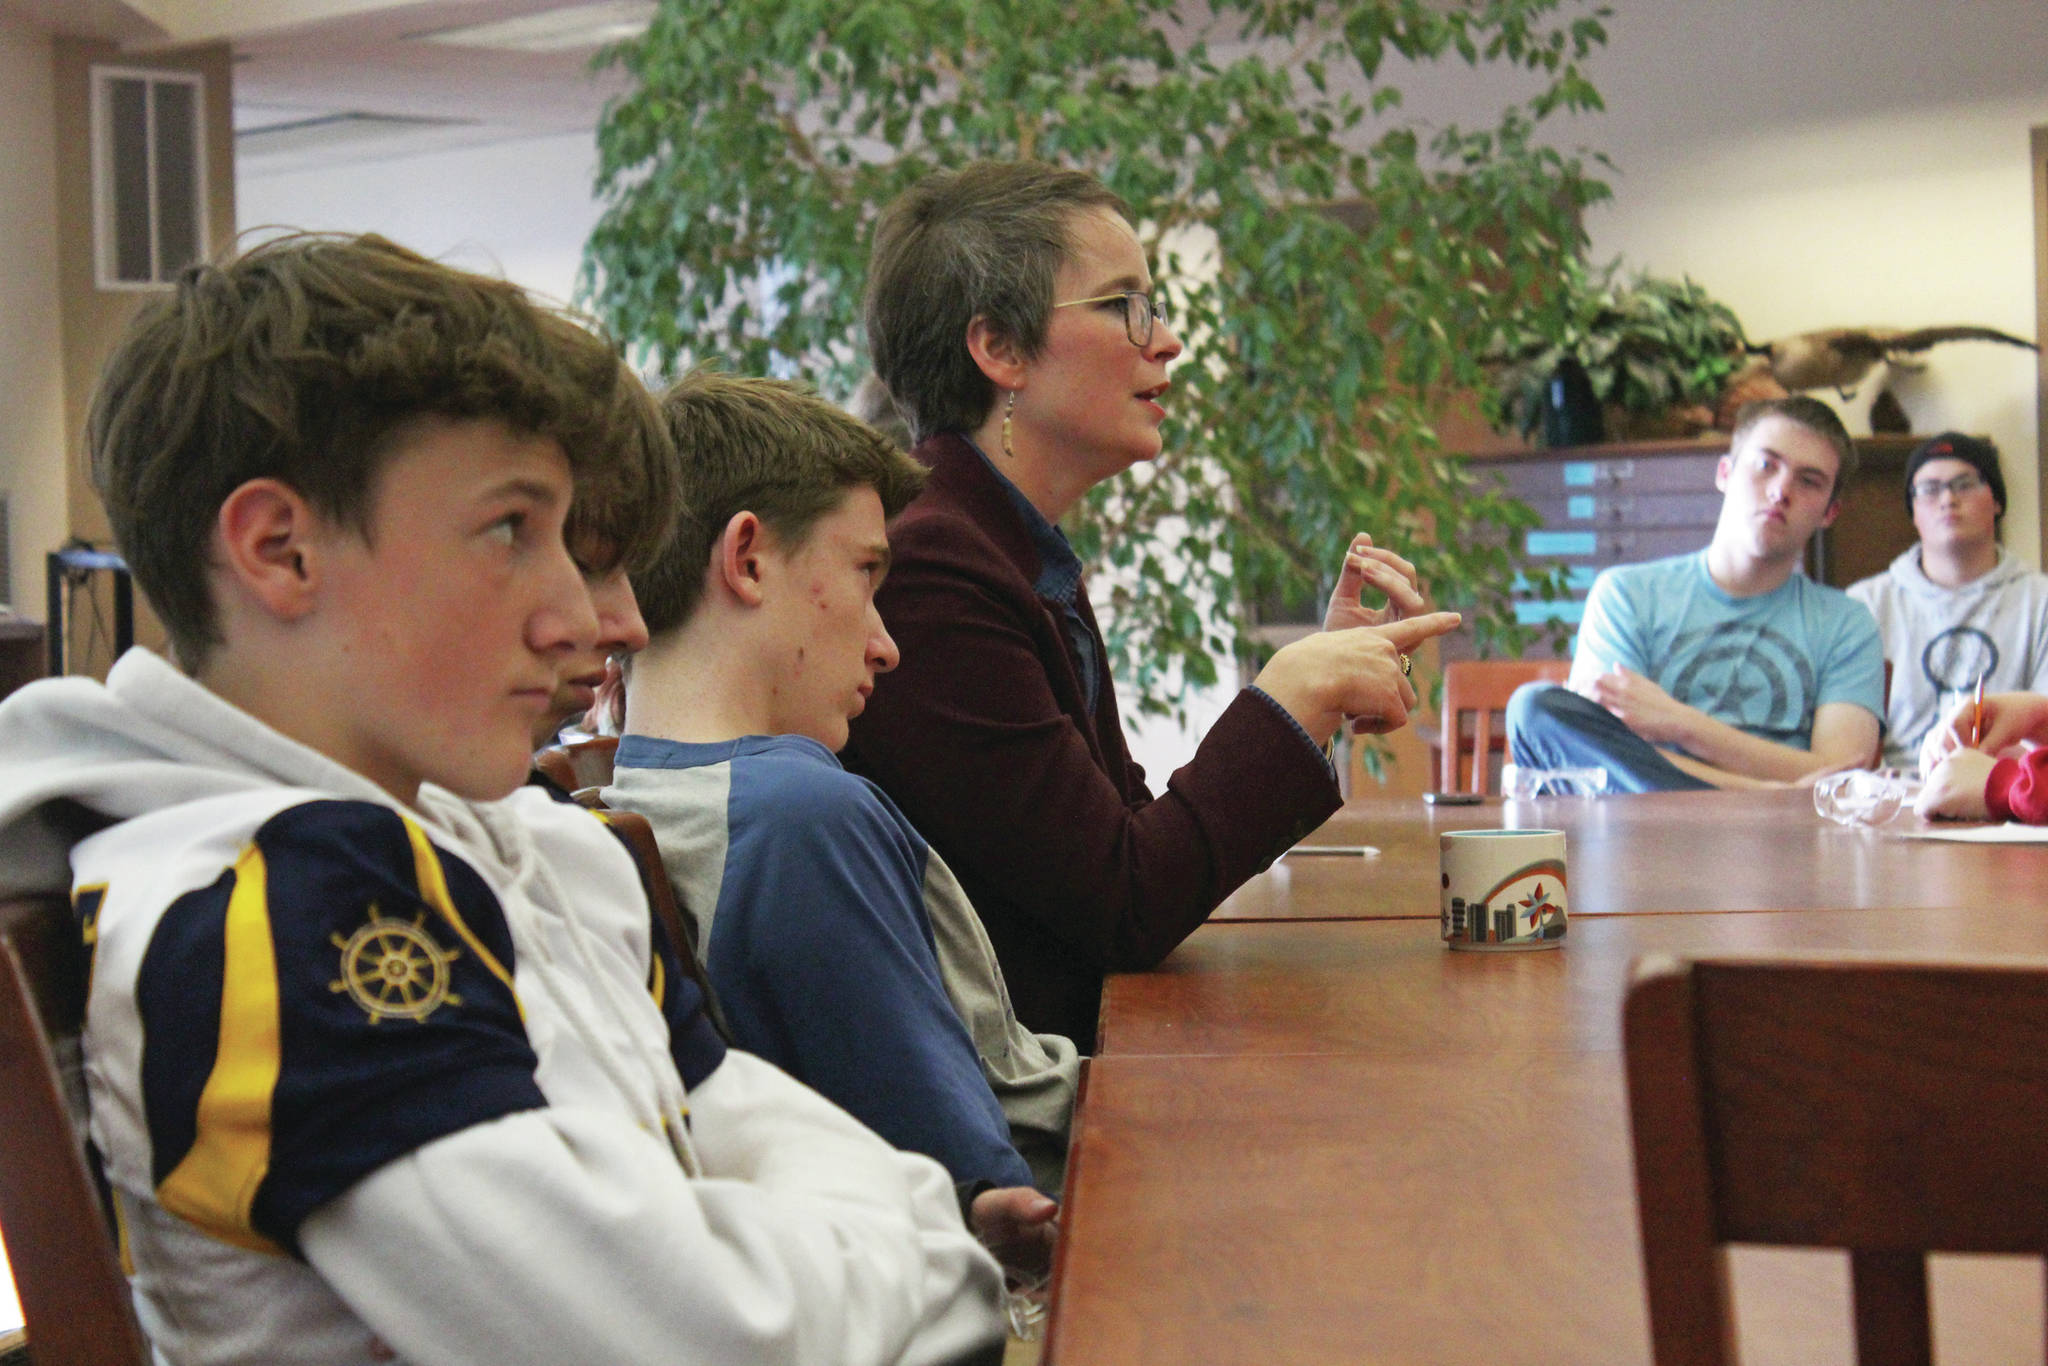 Rep. Sarah Vance (R-Homer) speaks with Homer High School students about the environment and other state issues during one of two listening sessions she held Friday, Sept. 20, 2019 at the school in Homer, Alaska. (Photo by Megan Pacer/Homer News)